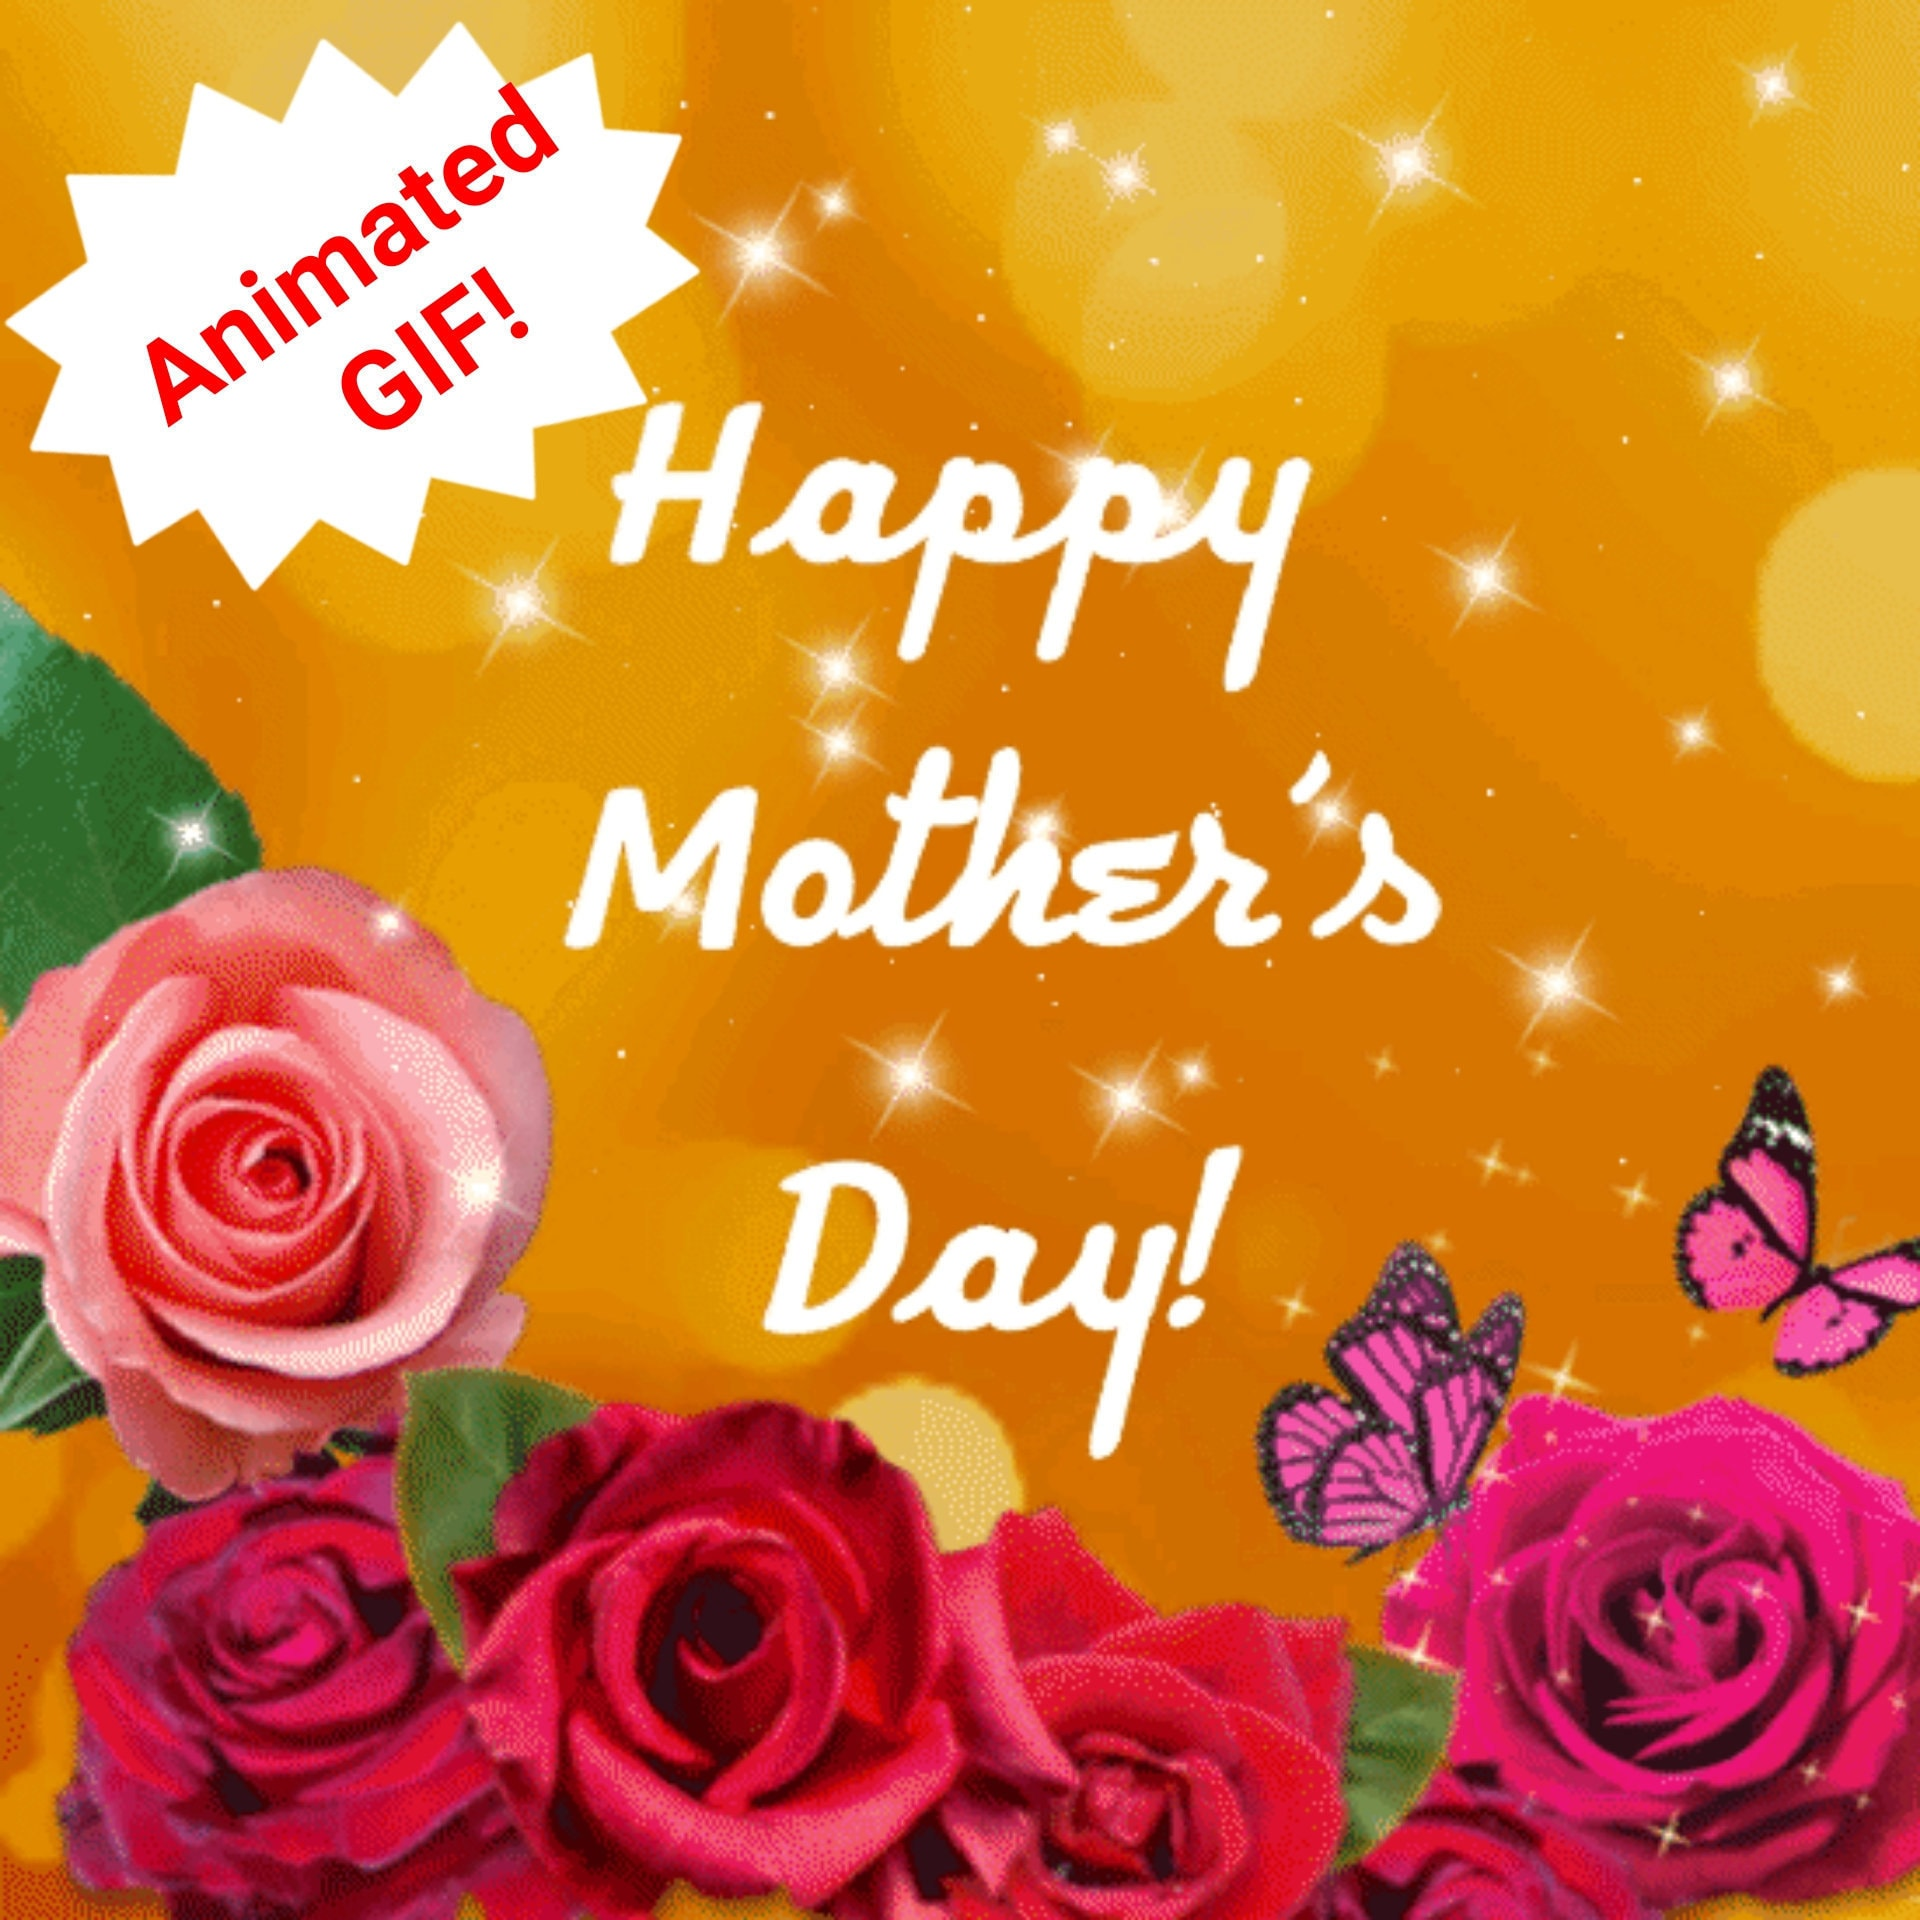 Ecards animated gif mothers day card instent download for zoom m4hsunfo